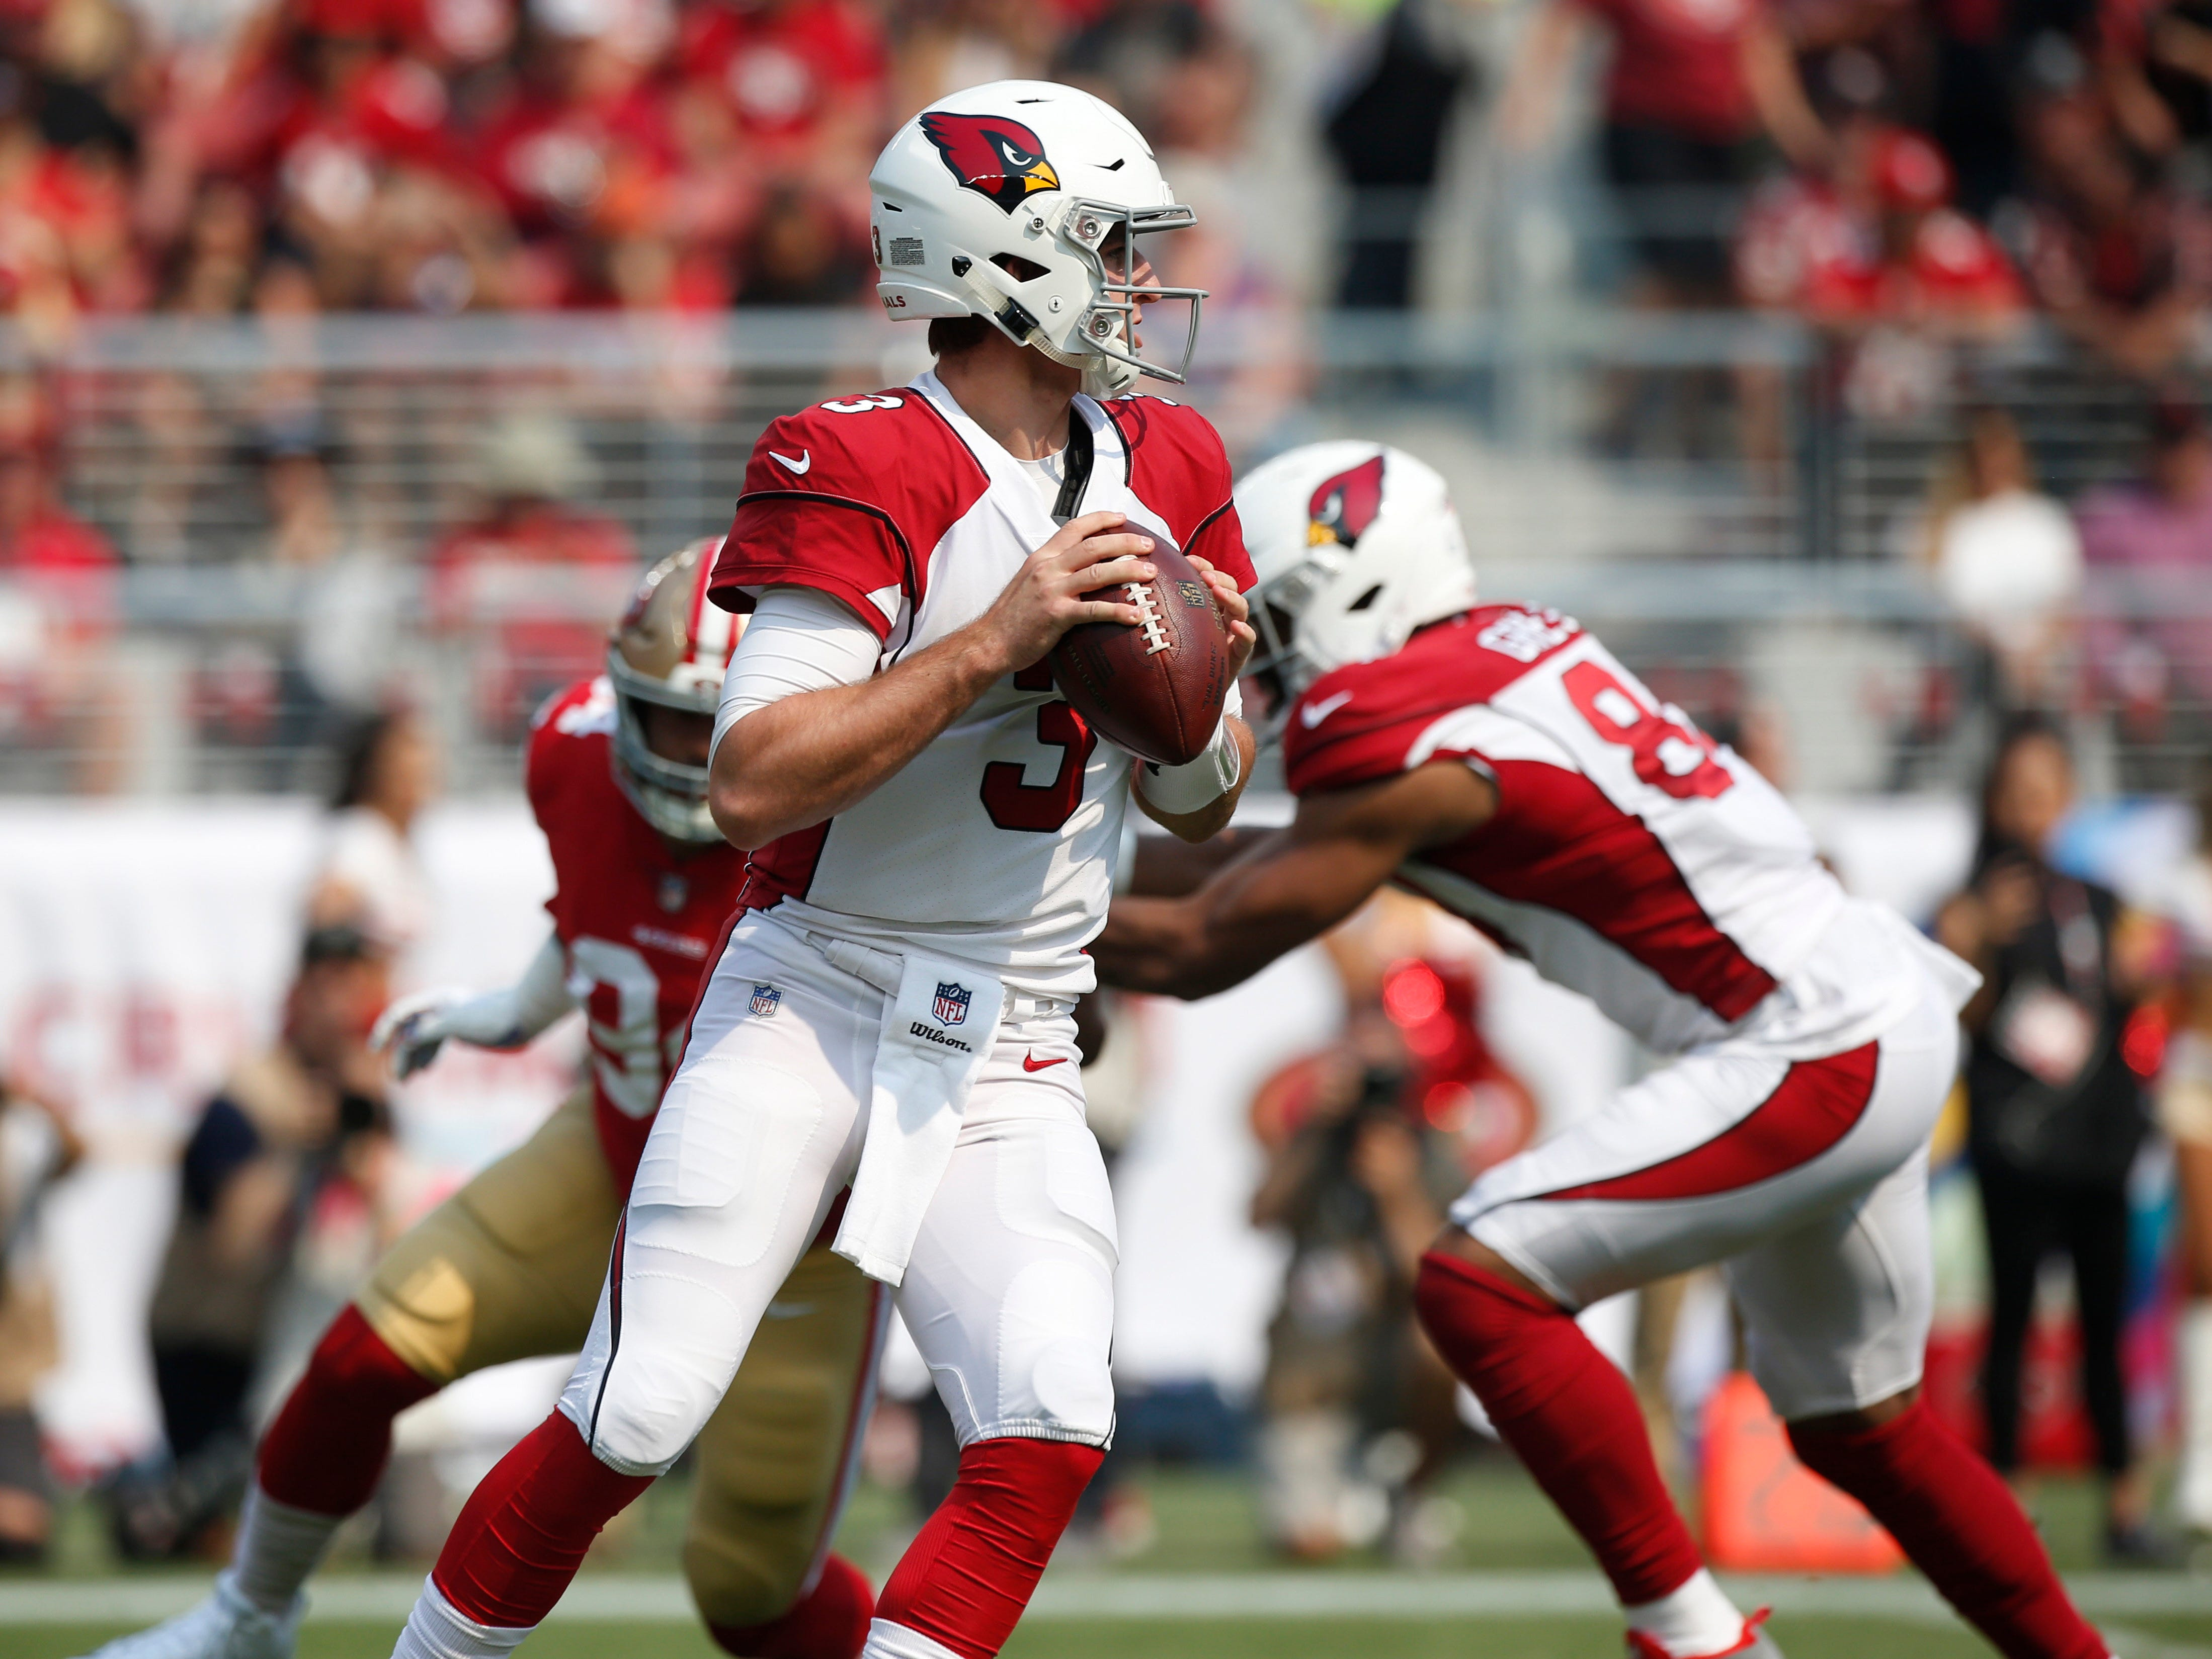 Oct 7, 2018; Santa Clara, CA, USA; Arizona Cardinals quarterback Josh Rosen (3) prepares to throw a pass against the San Francisco 49ers in the first quarter at Levi's Stadium.